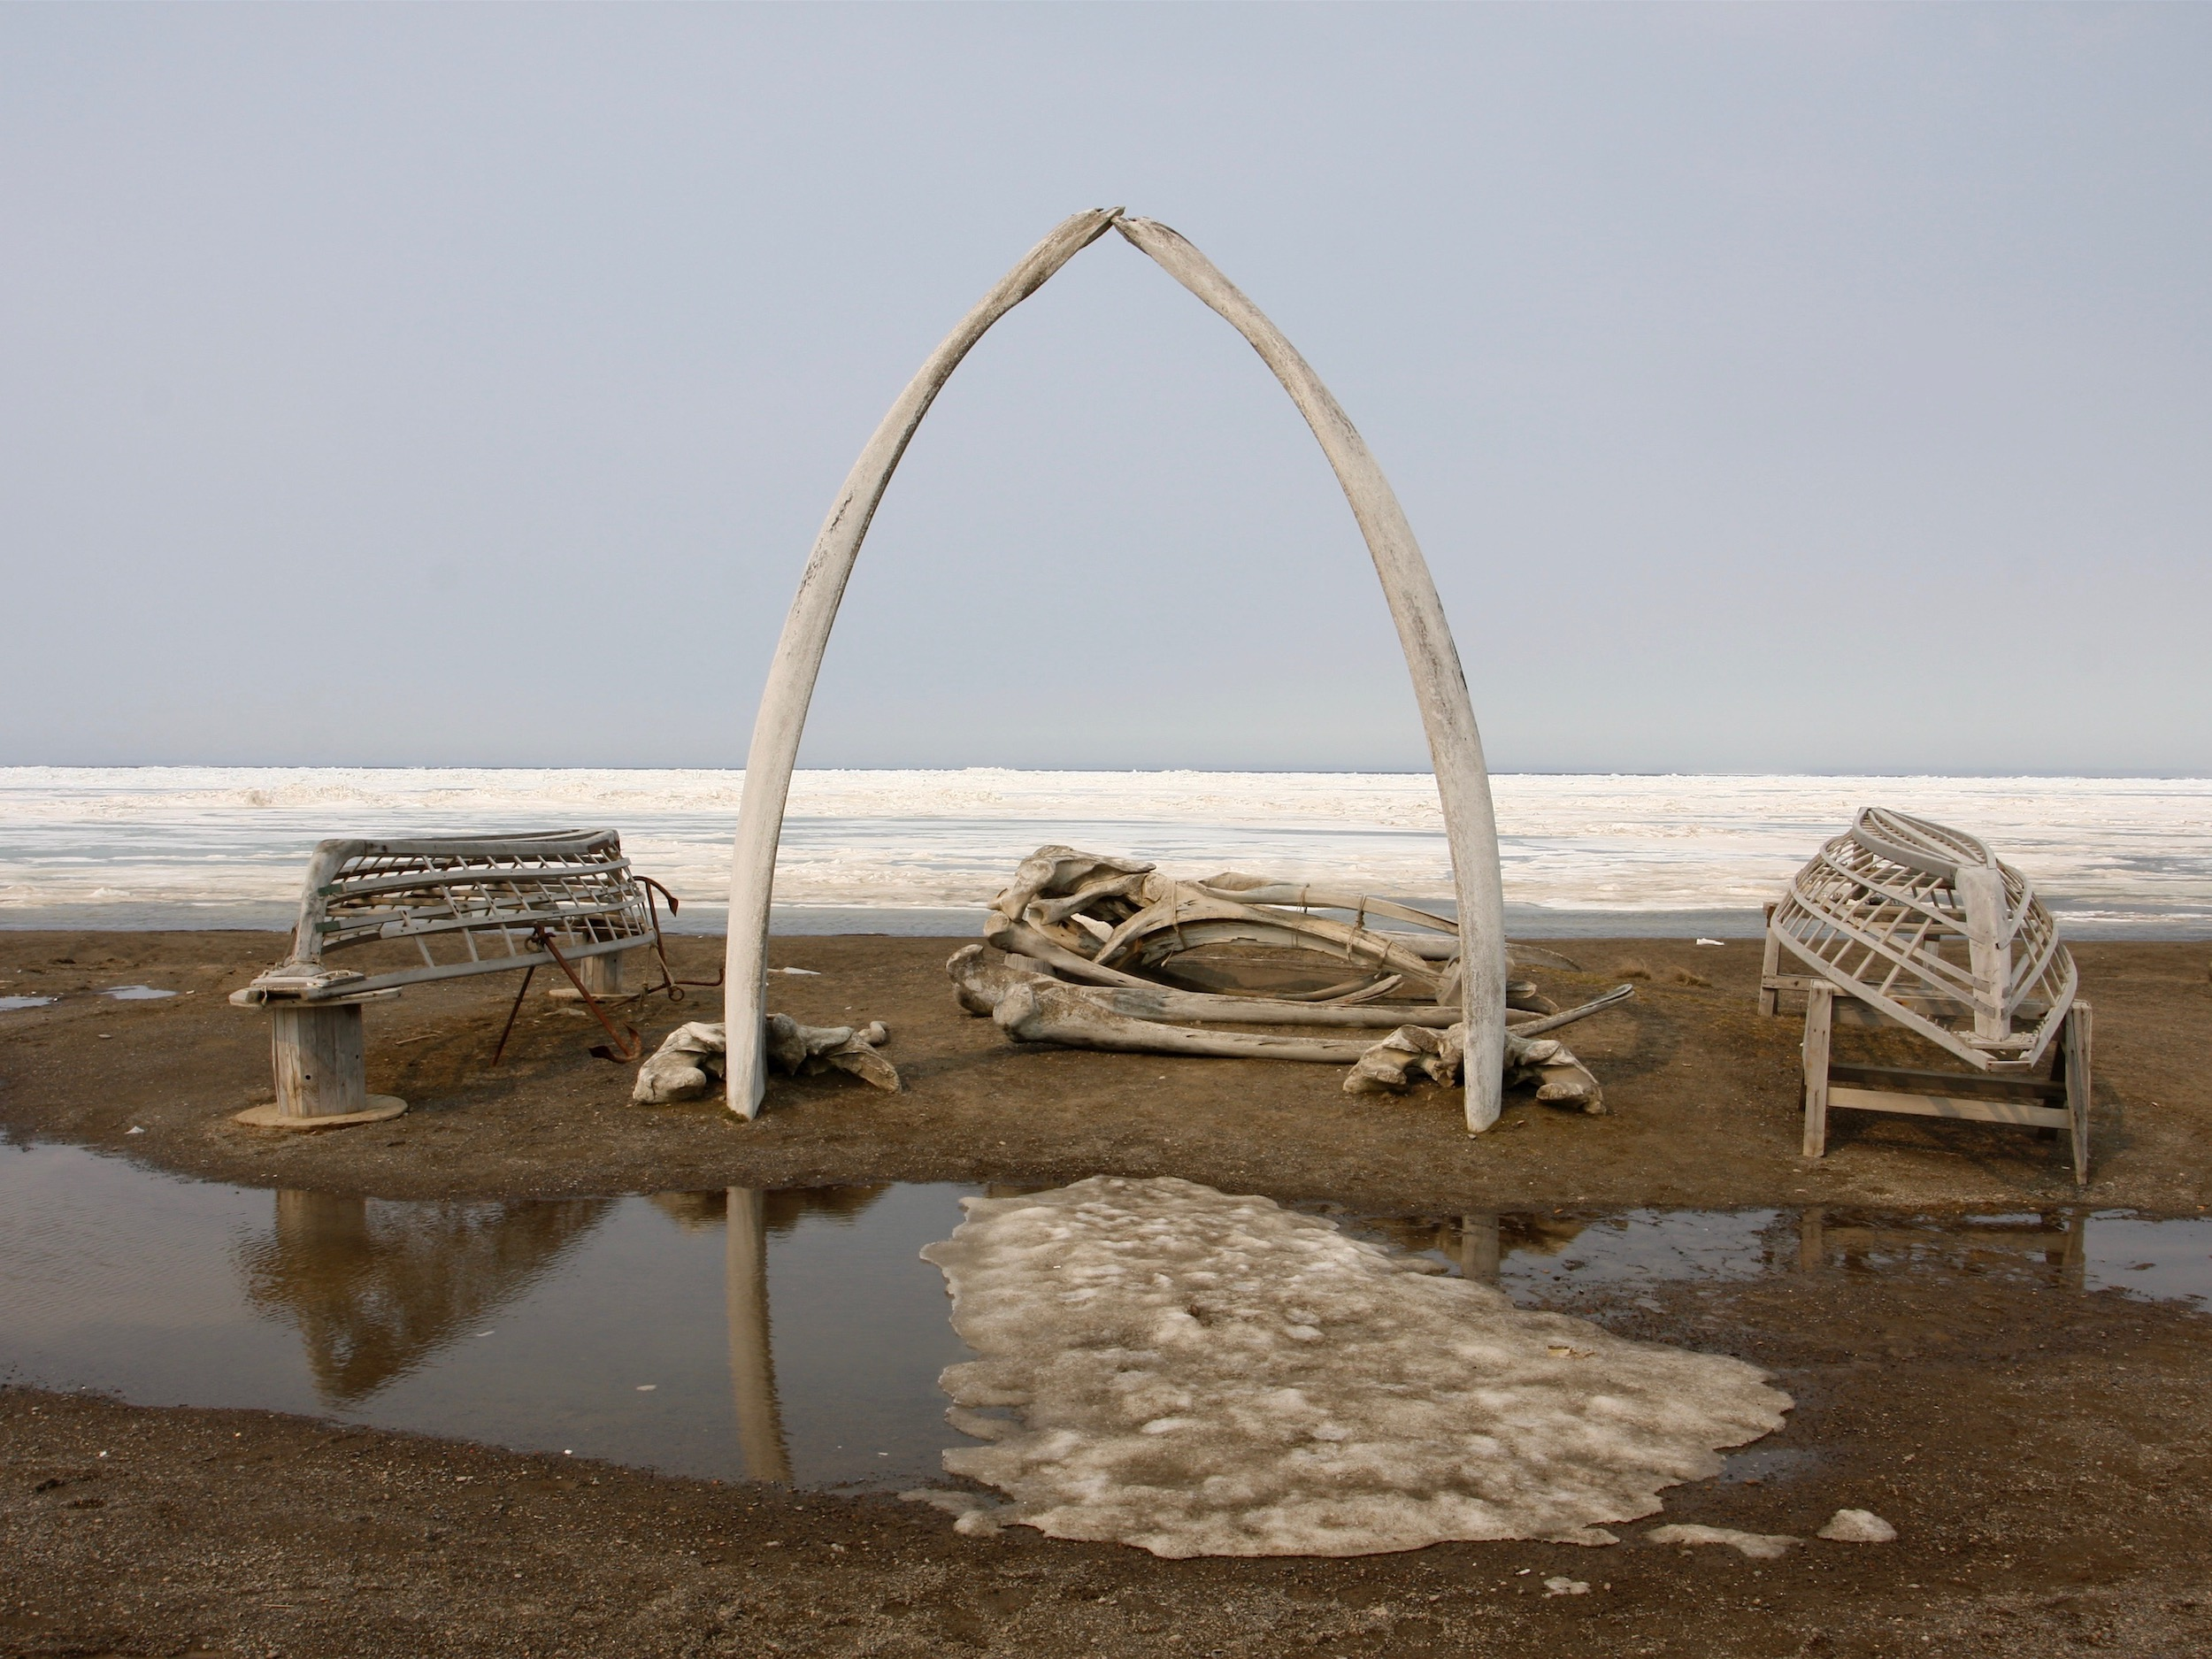 Obama cites Native subsistence needs in ban on offshore drilling